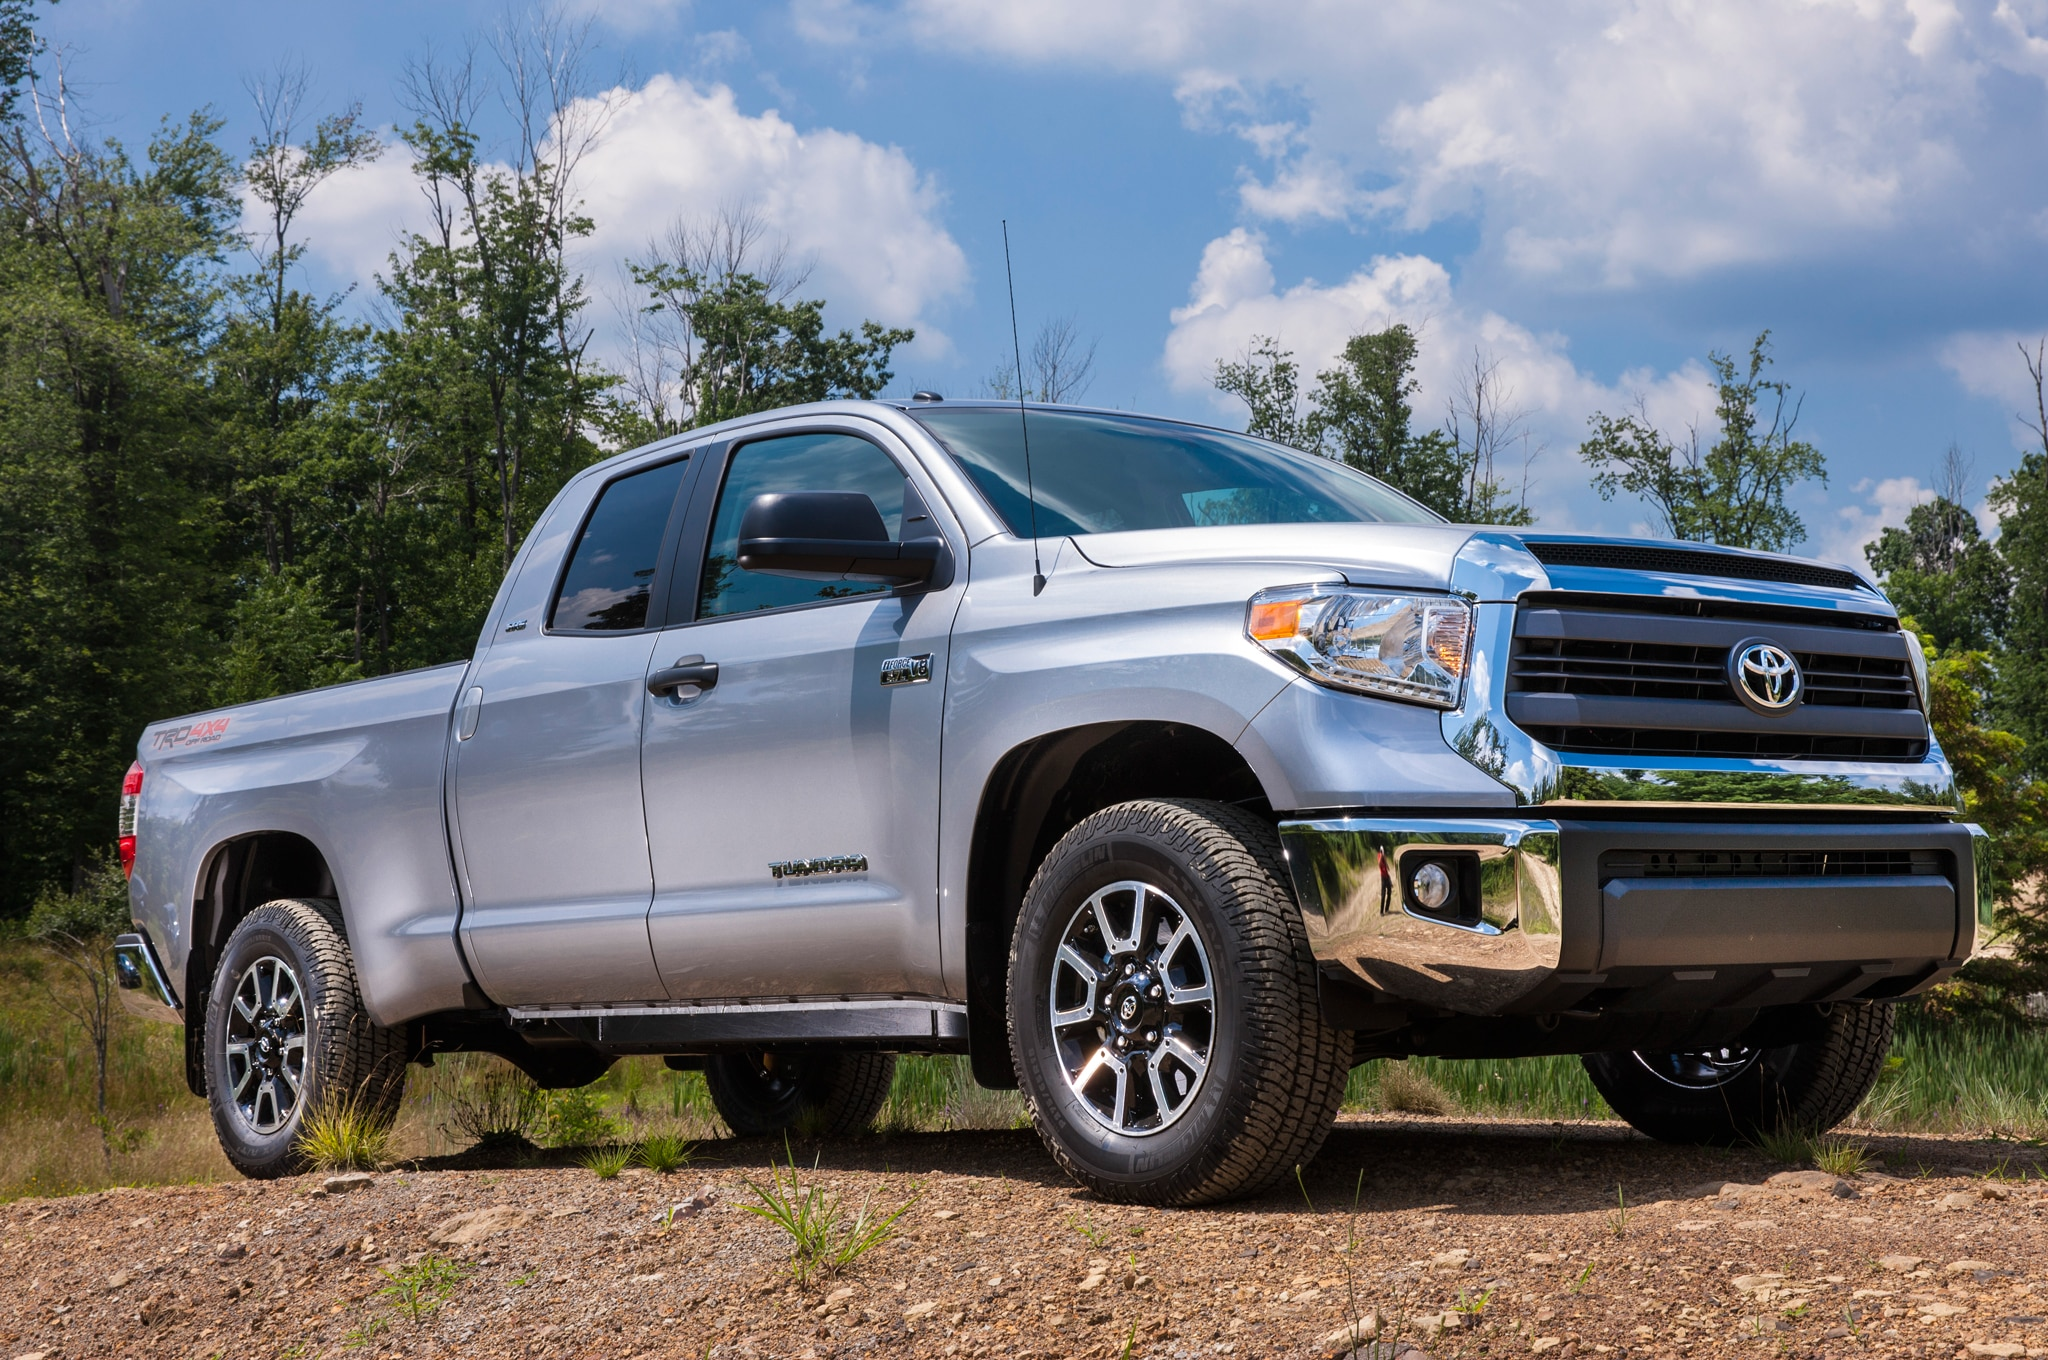 view magazine news another toyota trd the drive about automobile gripe limited first tundra front